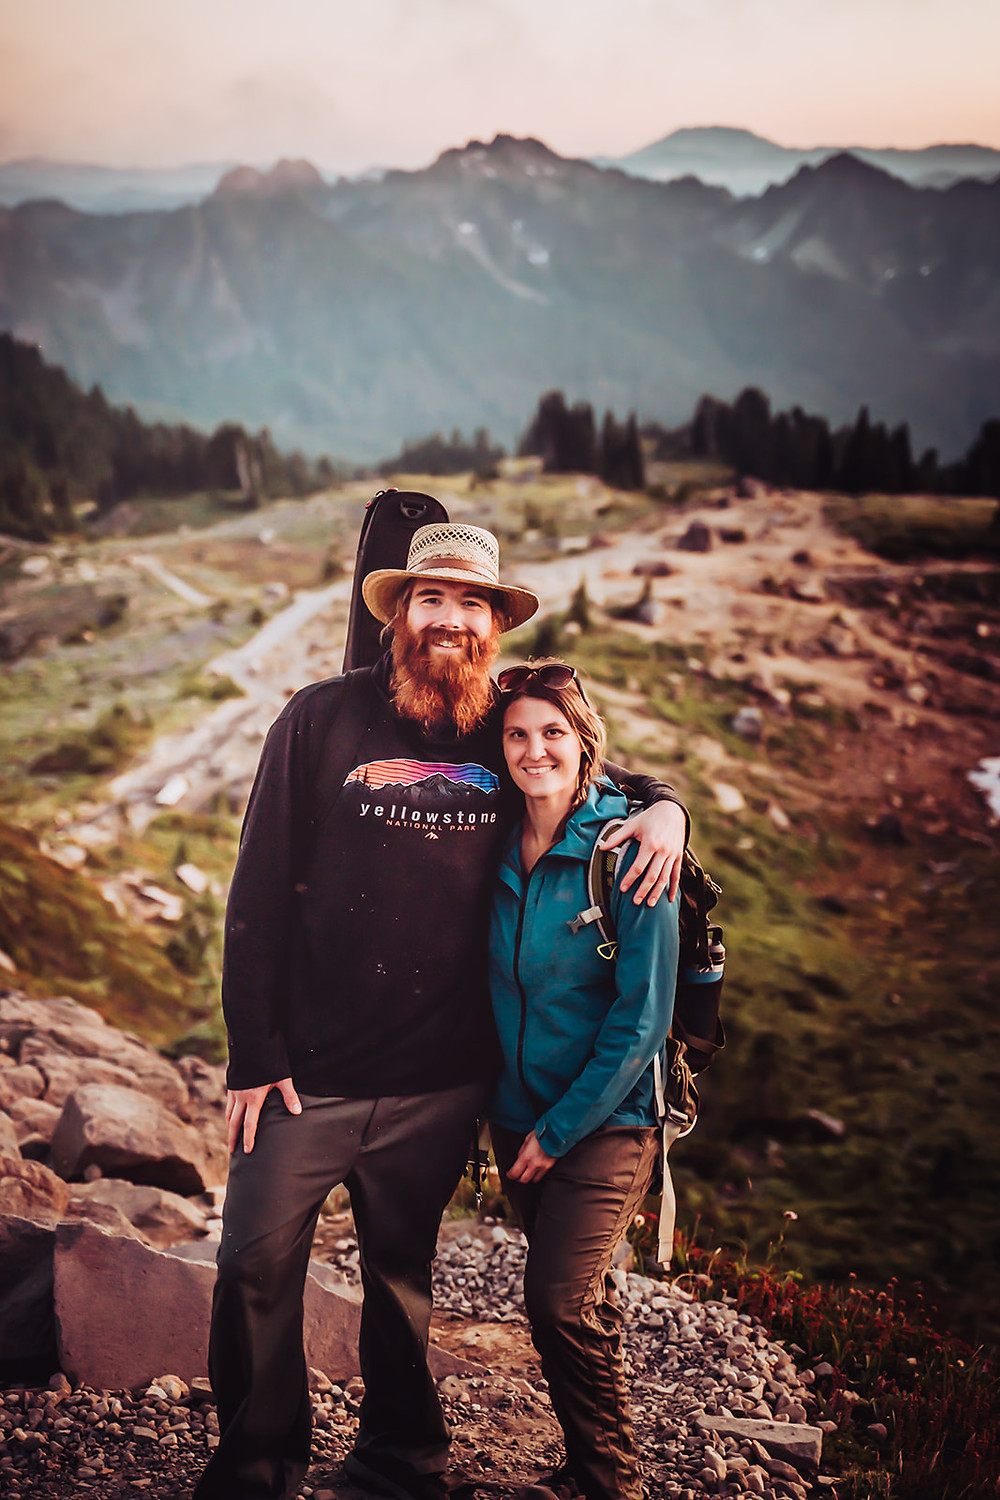 A elopement photographer and videographer team hiking in the mountains for an adventure wedding